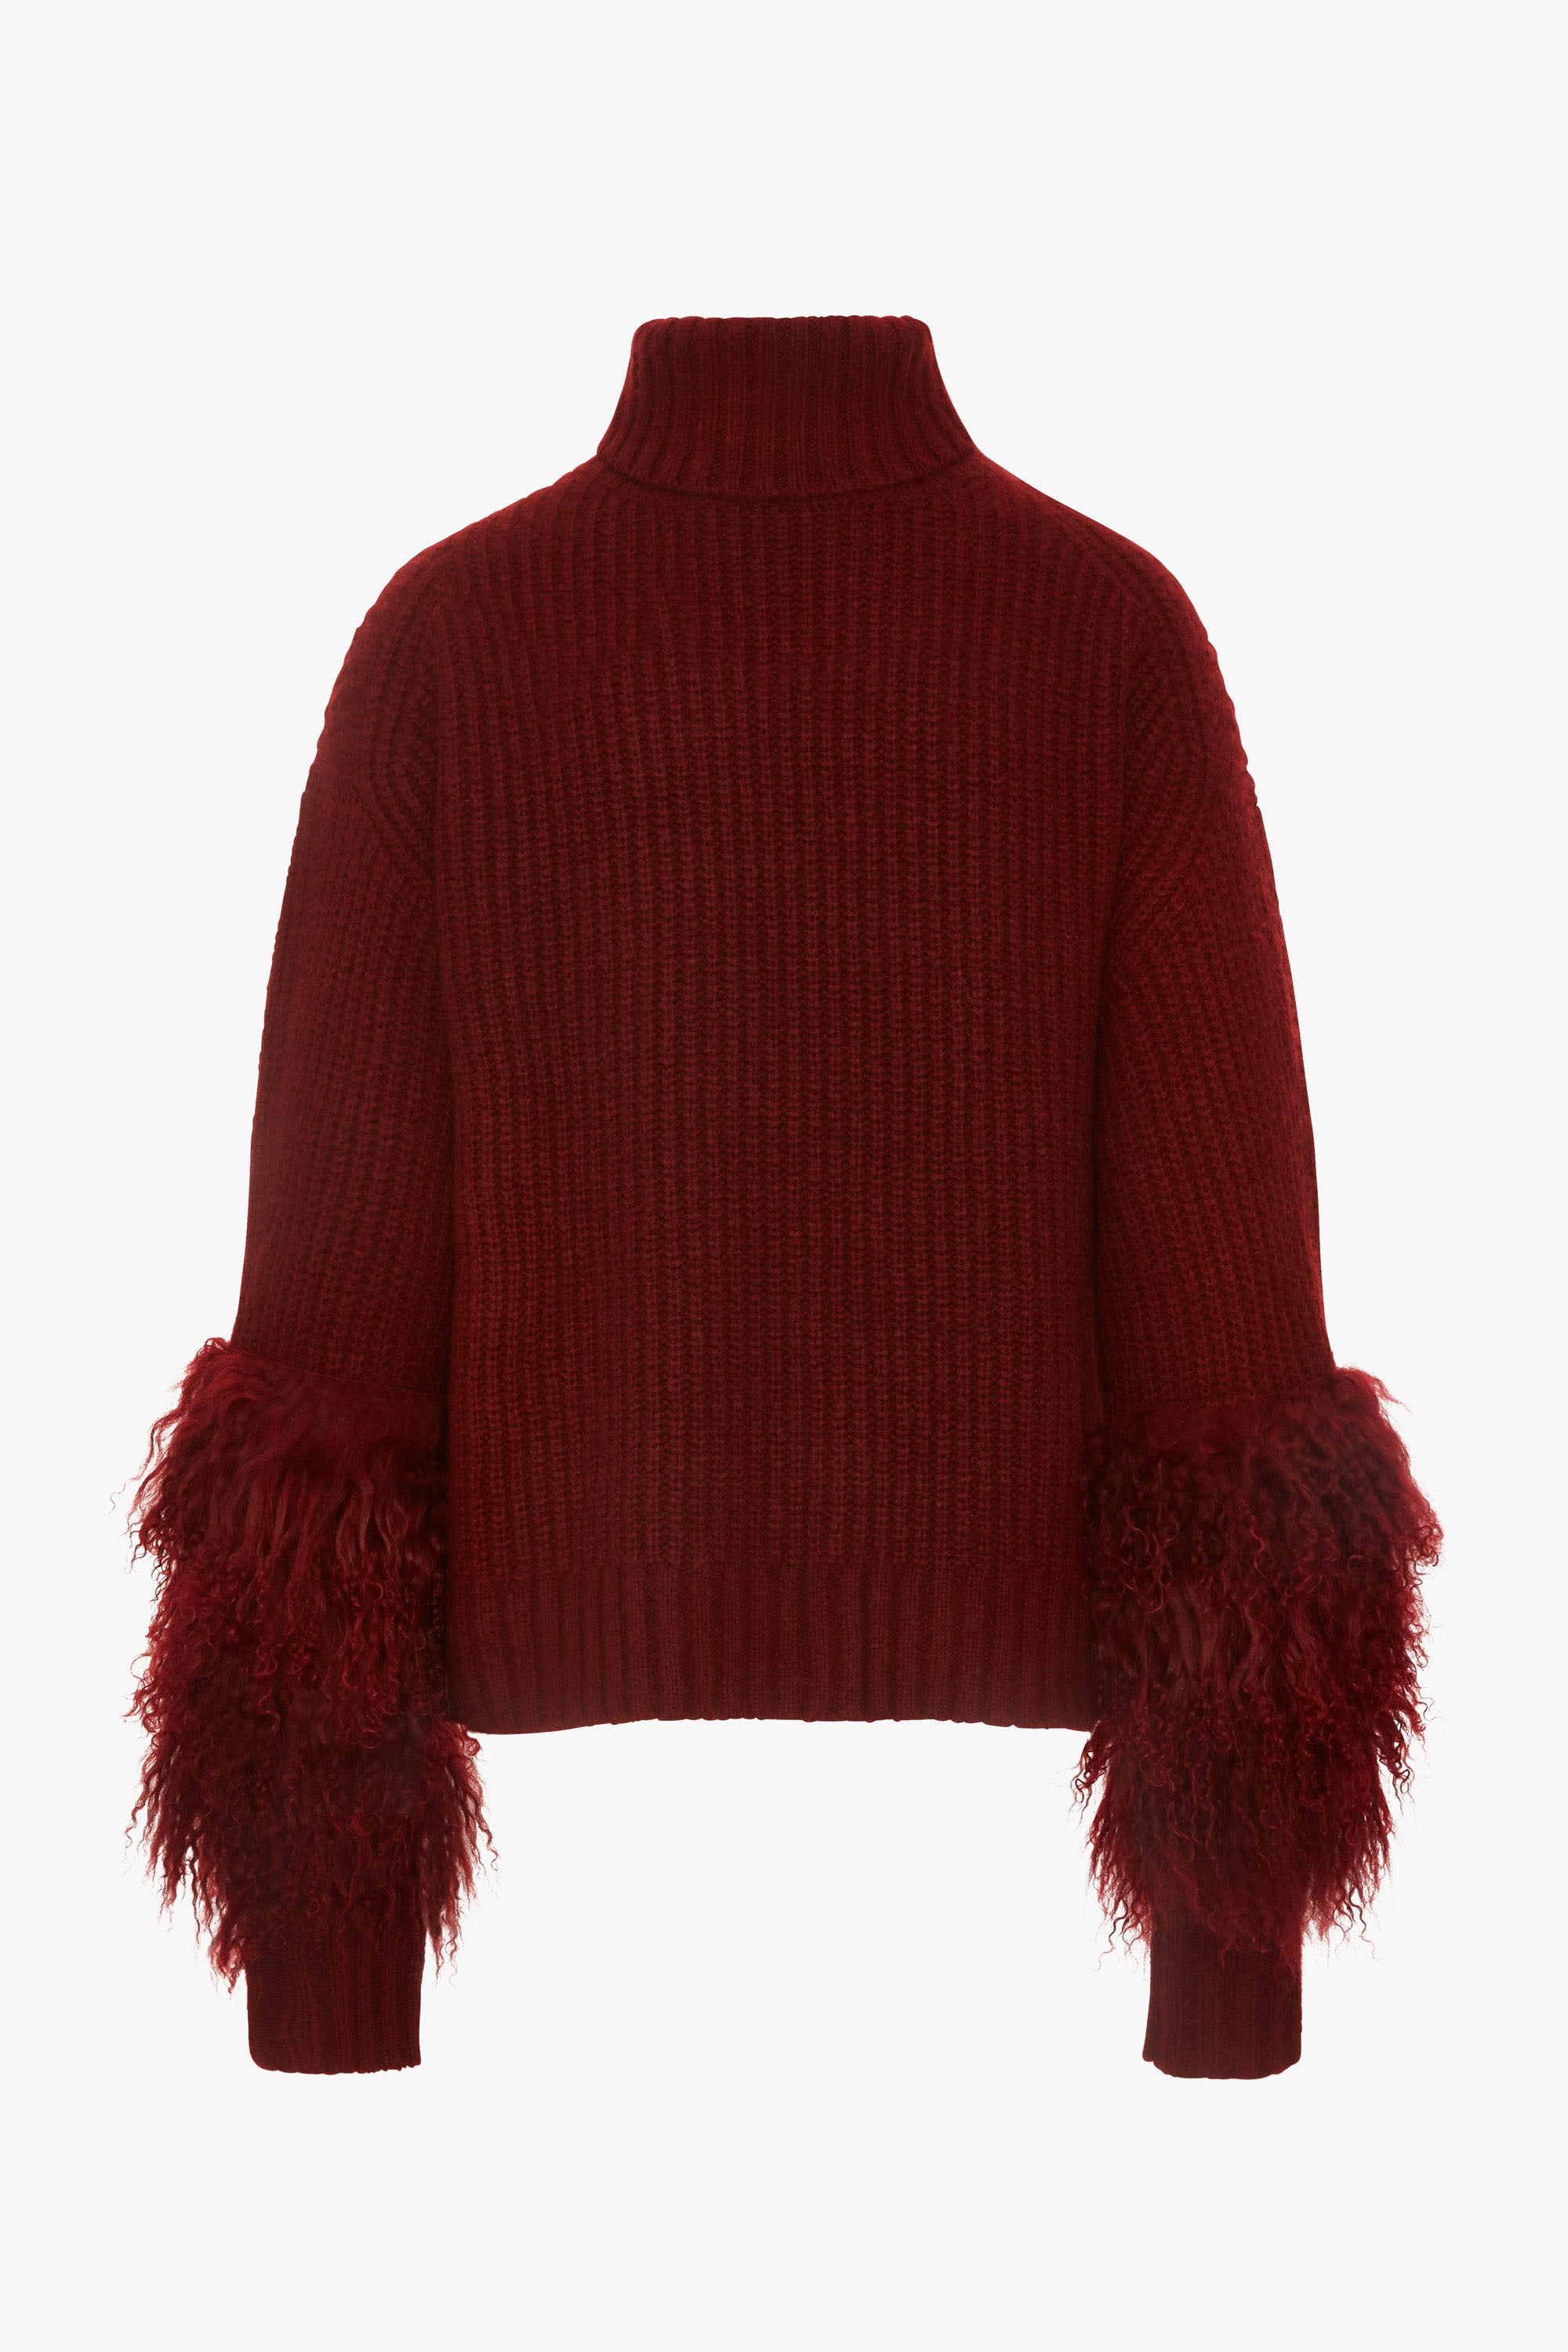 TURTLENECK SWEATER WITH SHEARLING